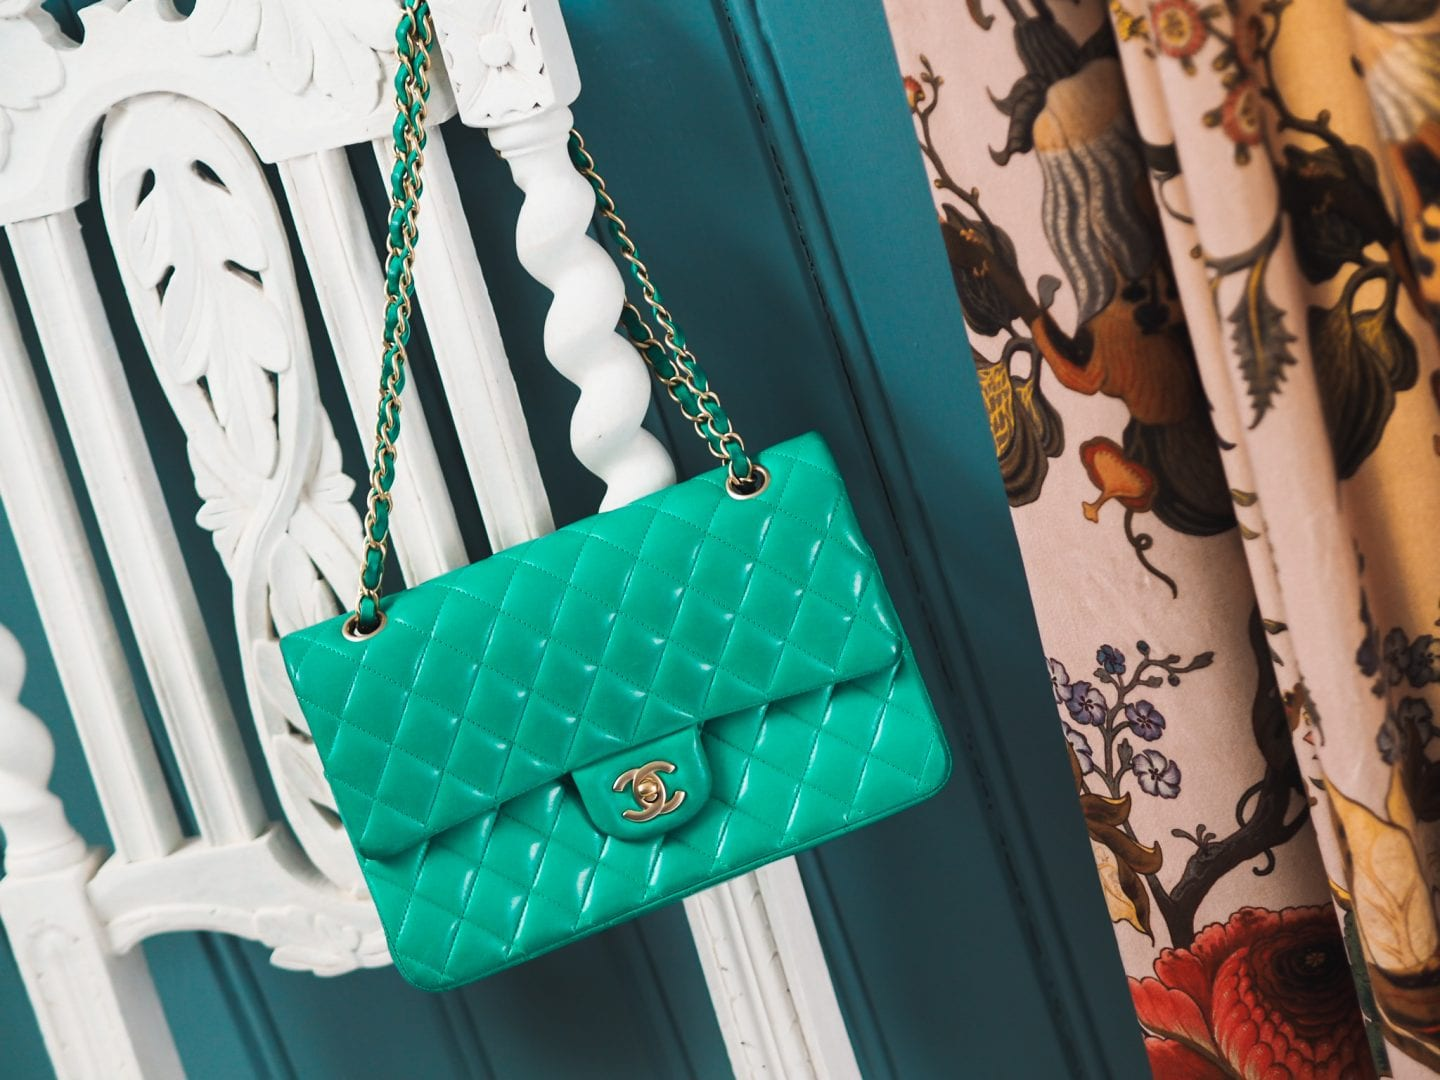 Chanel Color Transfer: What You Need To Know About The Lambskin Leather bags!